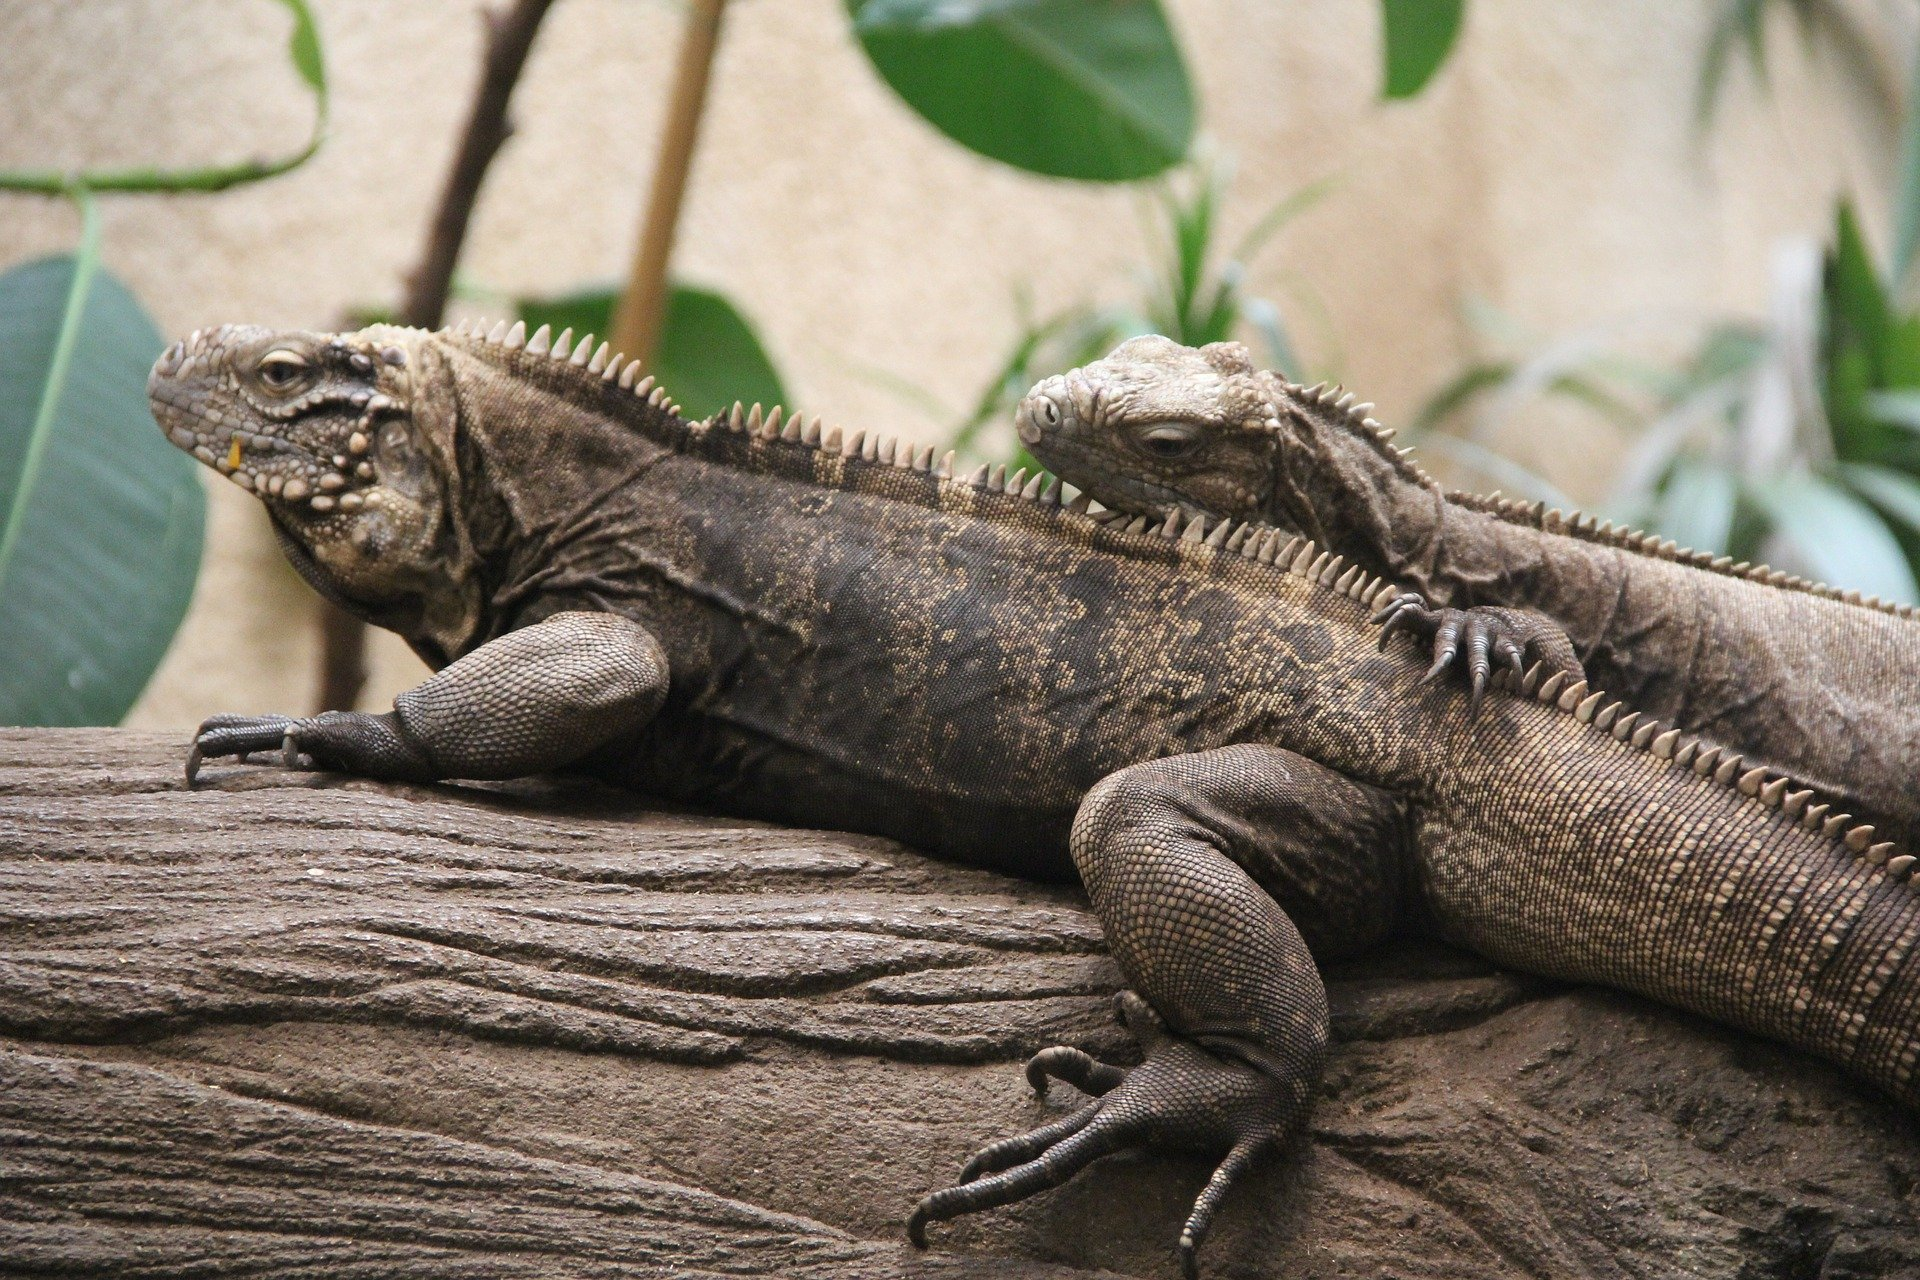 Reptiles. Click to see more of Adorable Animal Pictures for Valentine's Day | Animals Zone